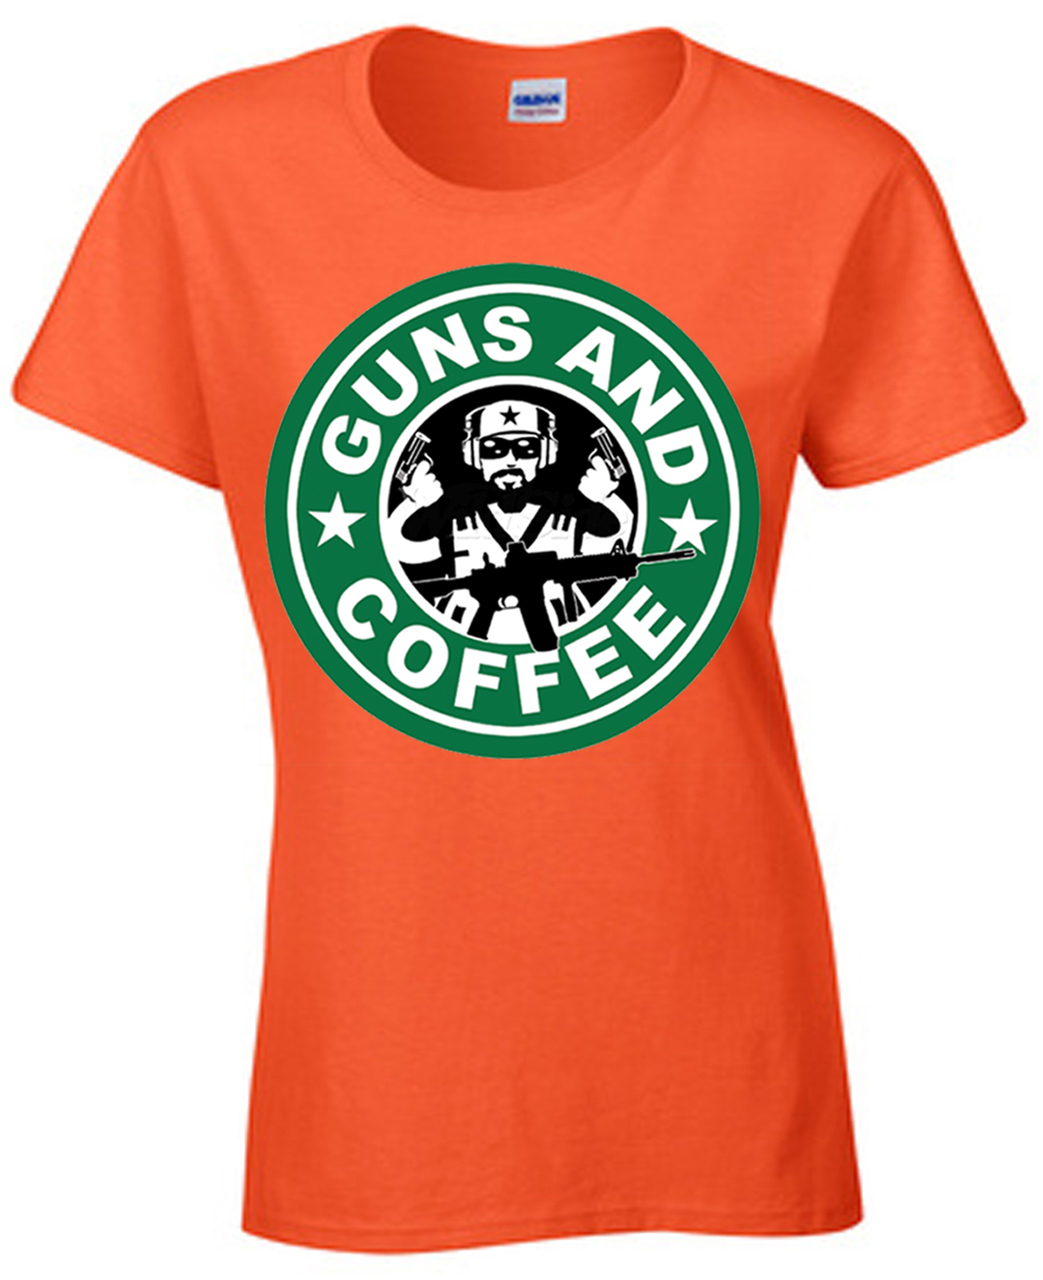 Guns & Coffee Guy T-Shirt